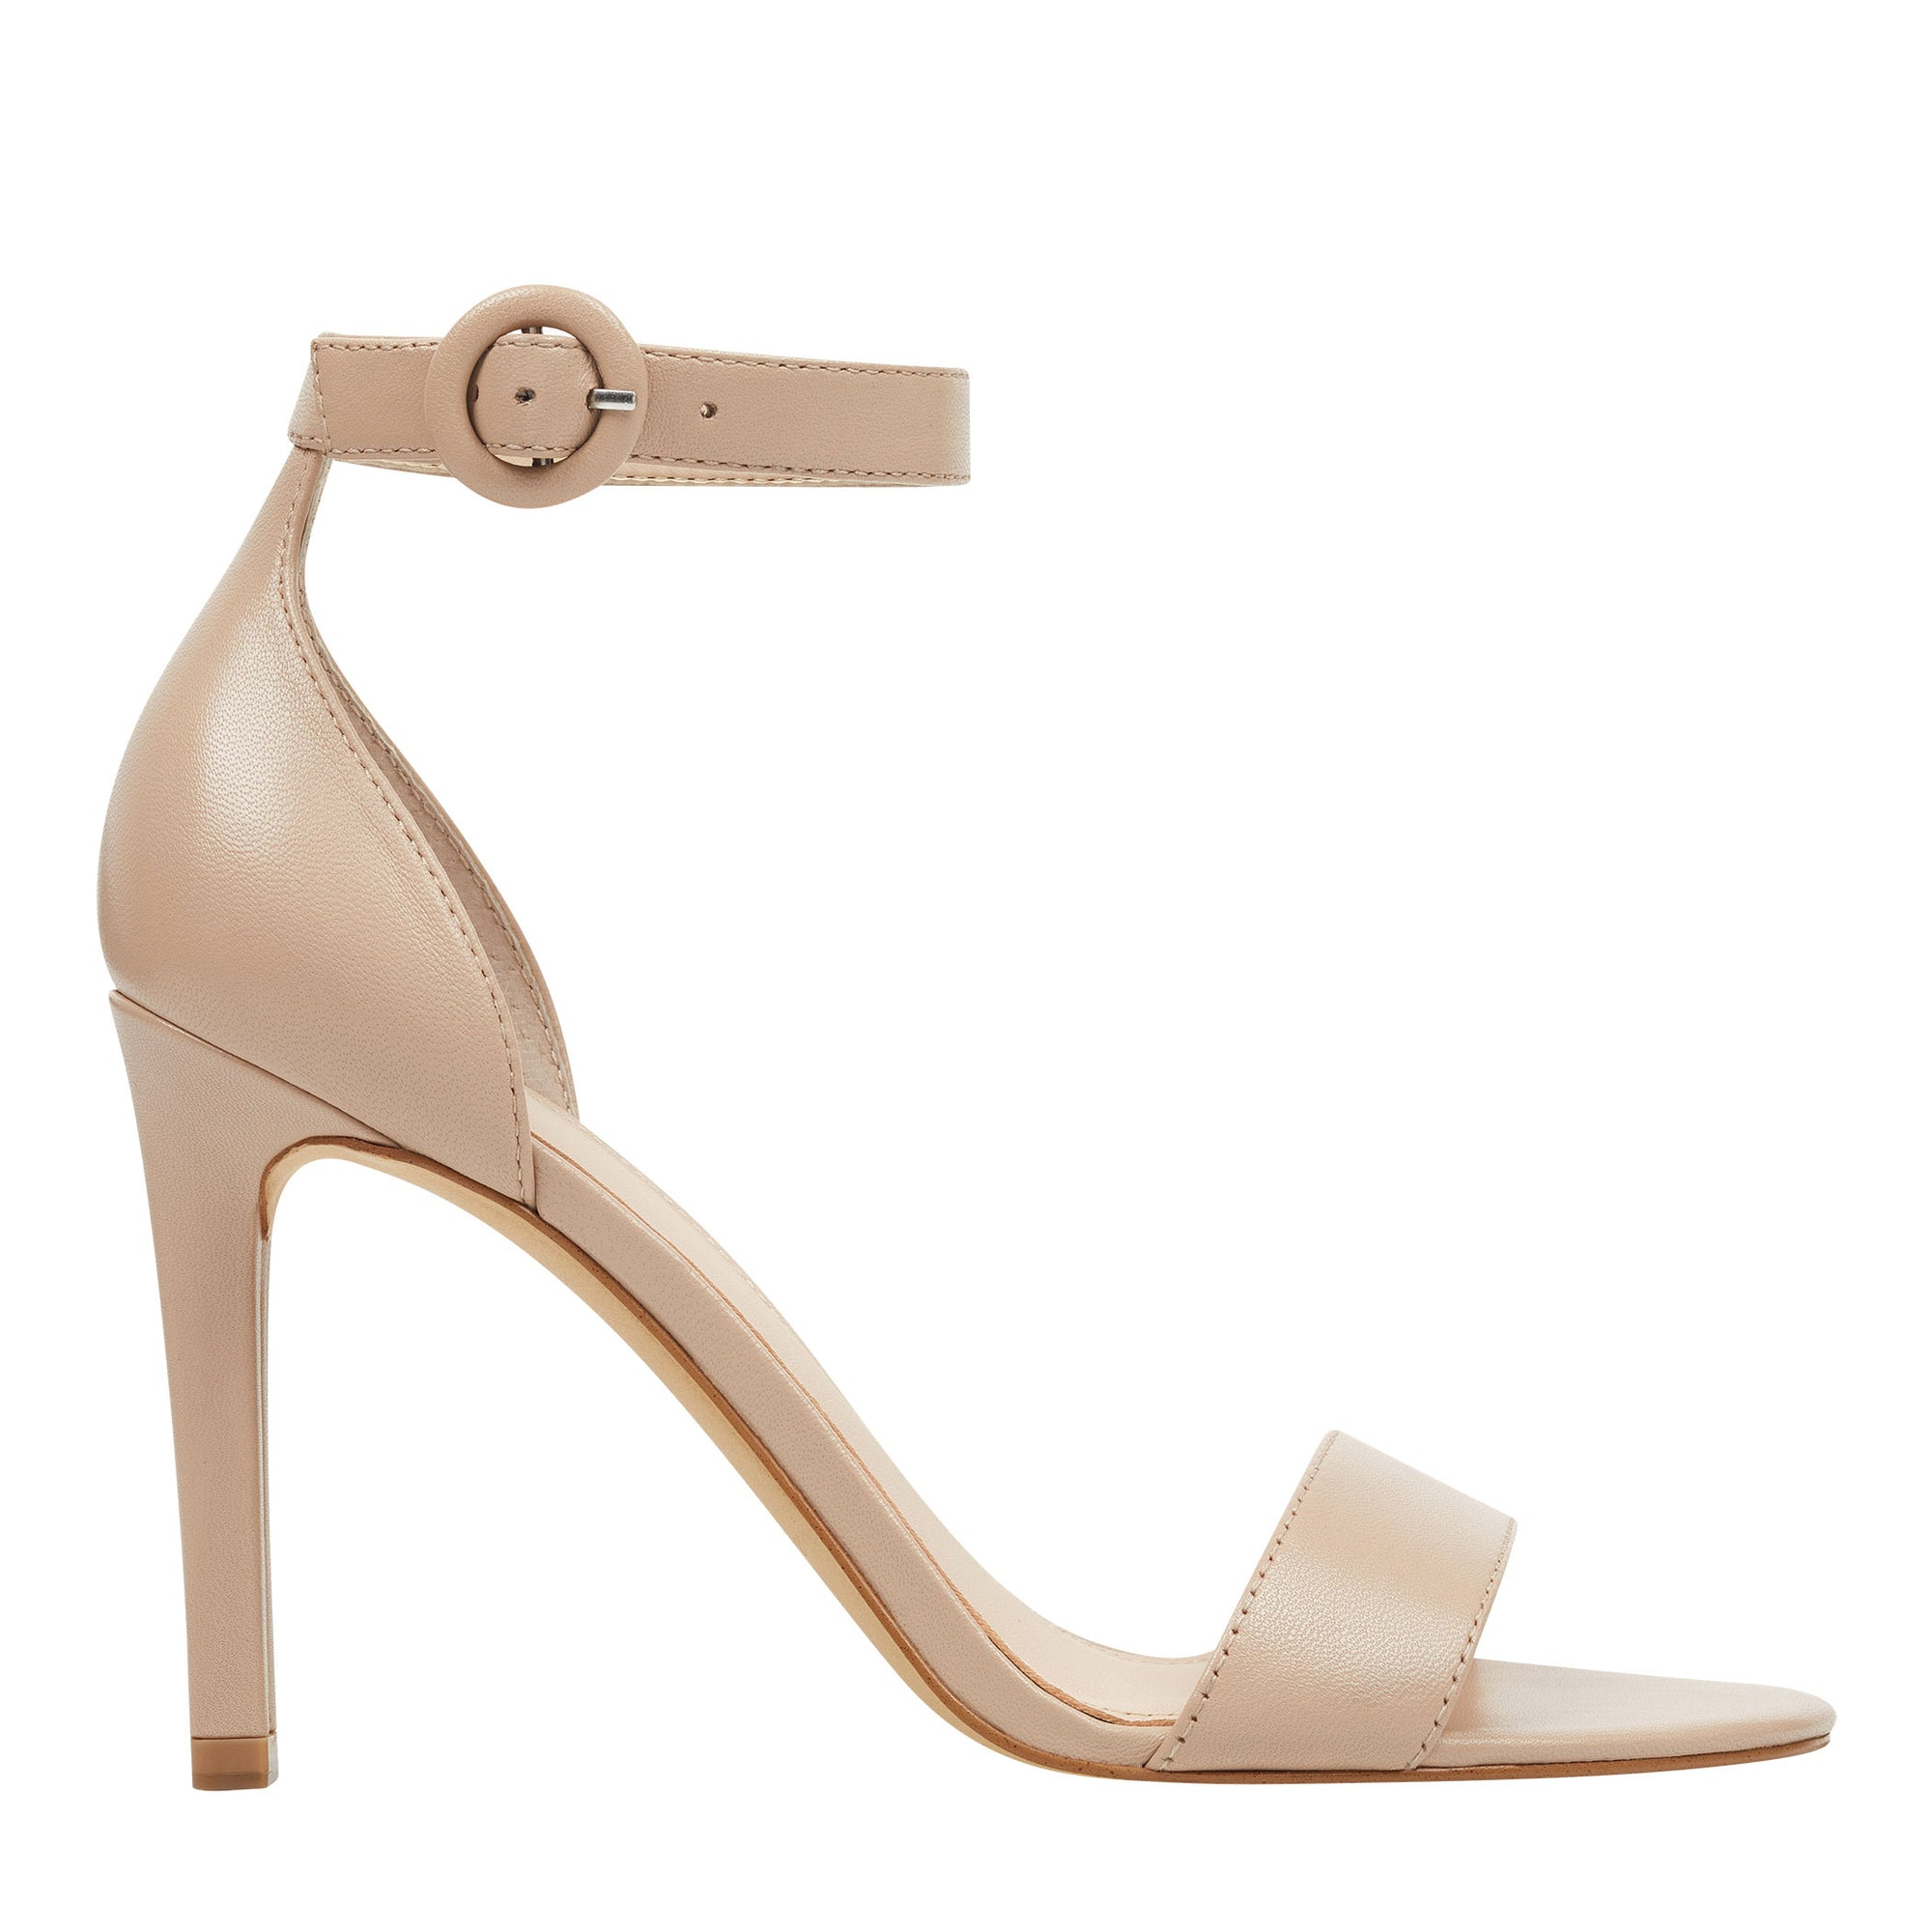 kora-pump-in-natural-leather